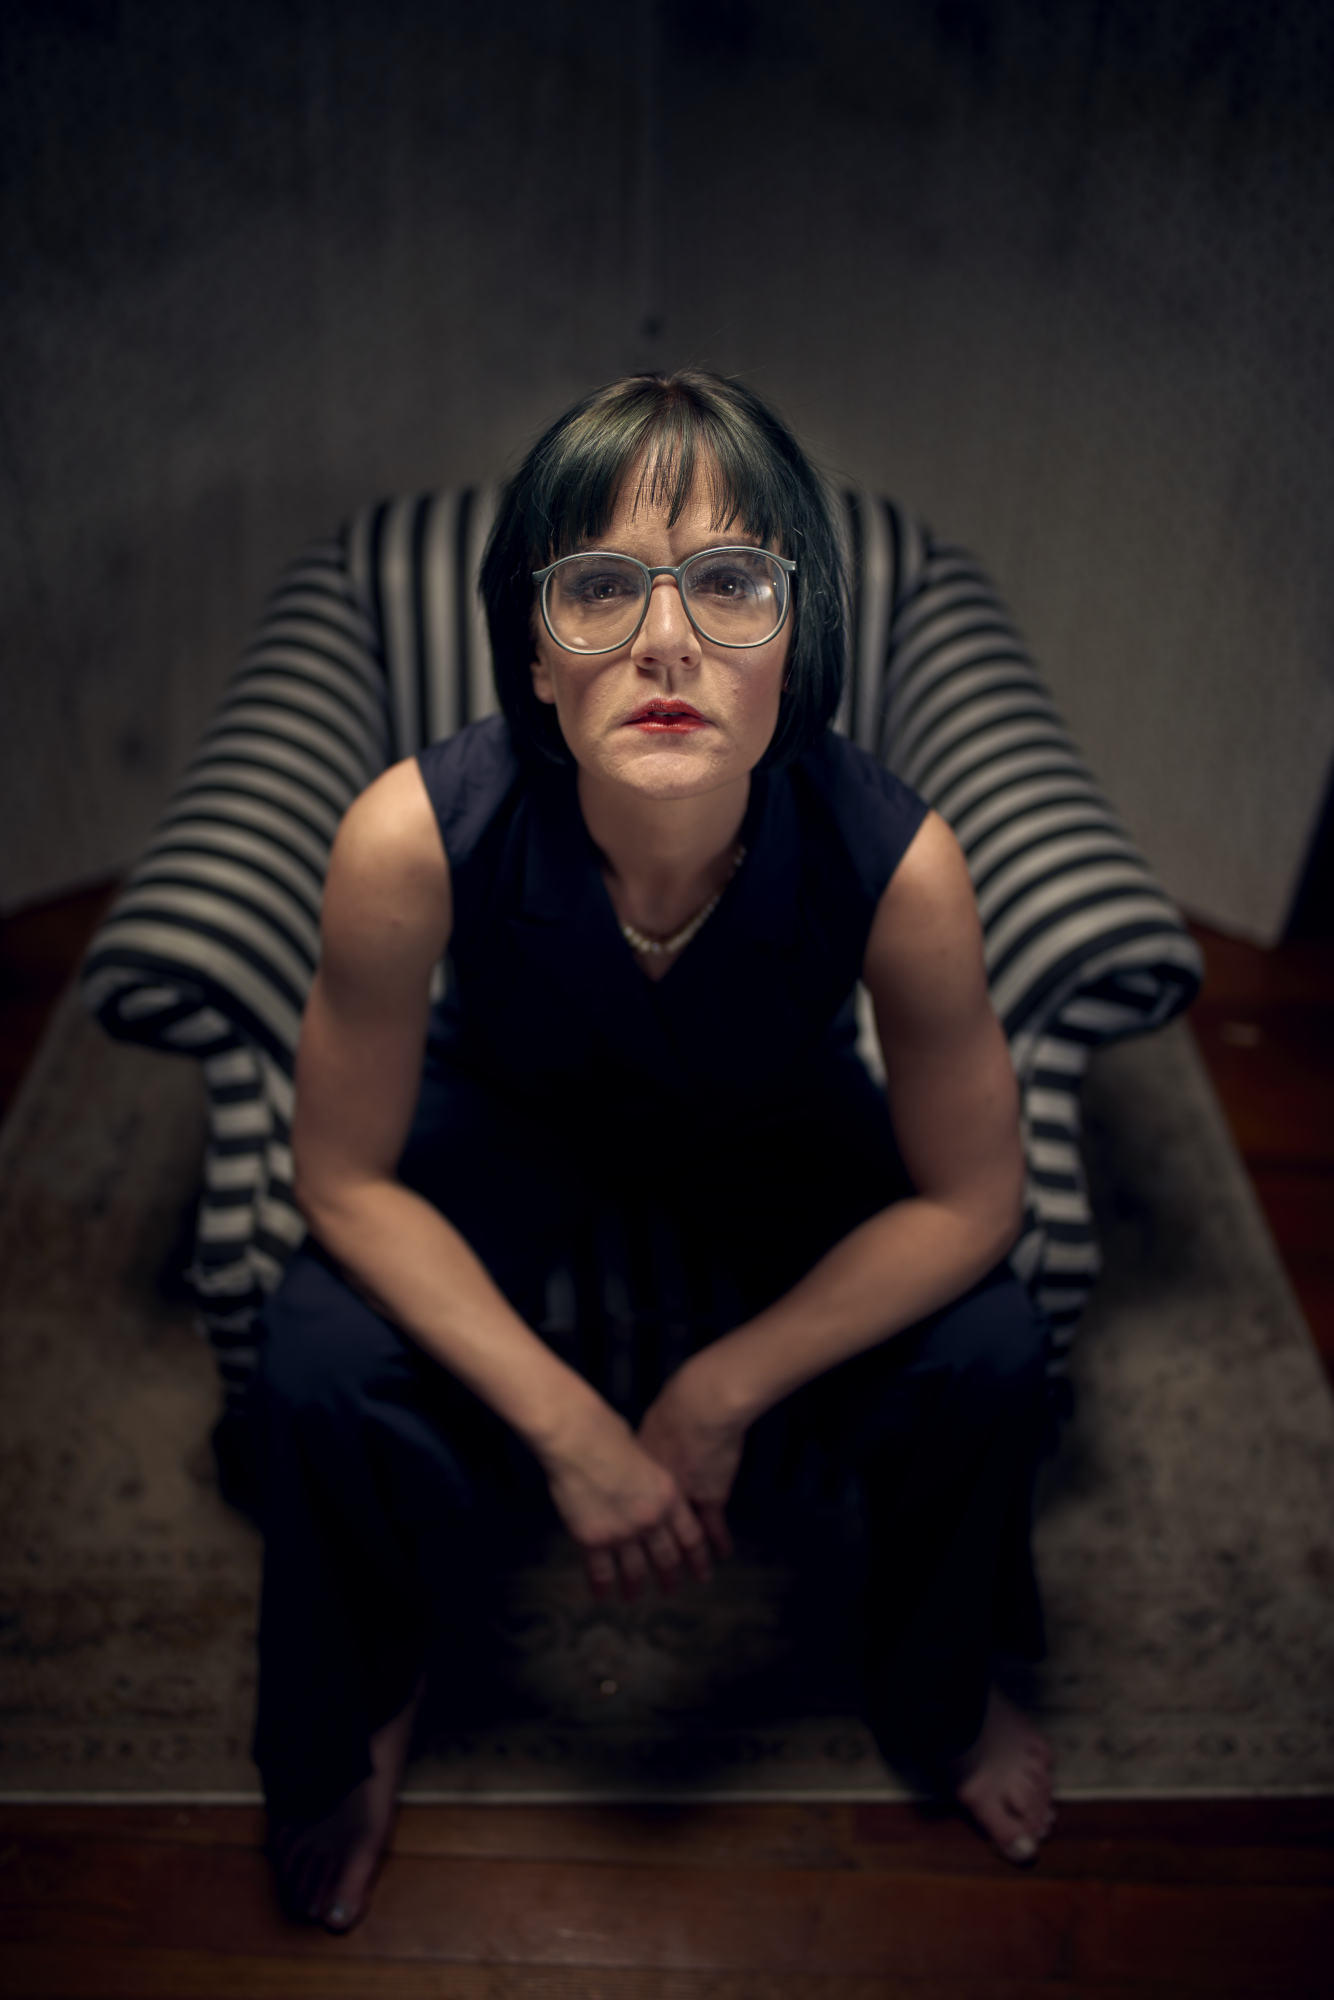 Editorial portrait of woman in grungy setting with glasses on.